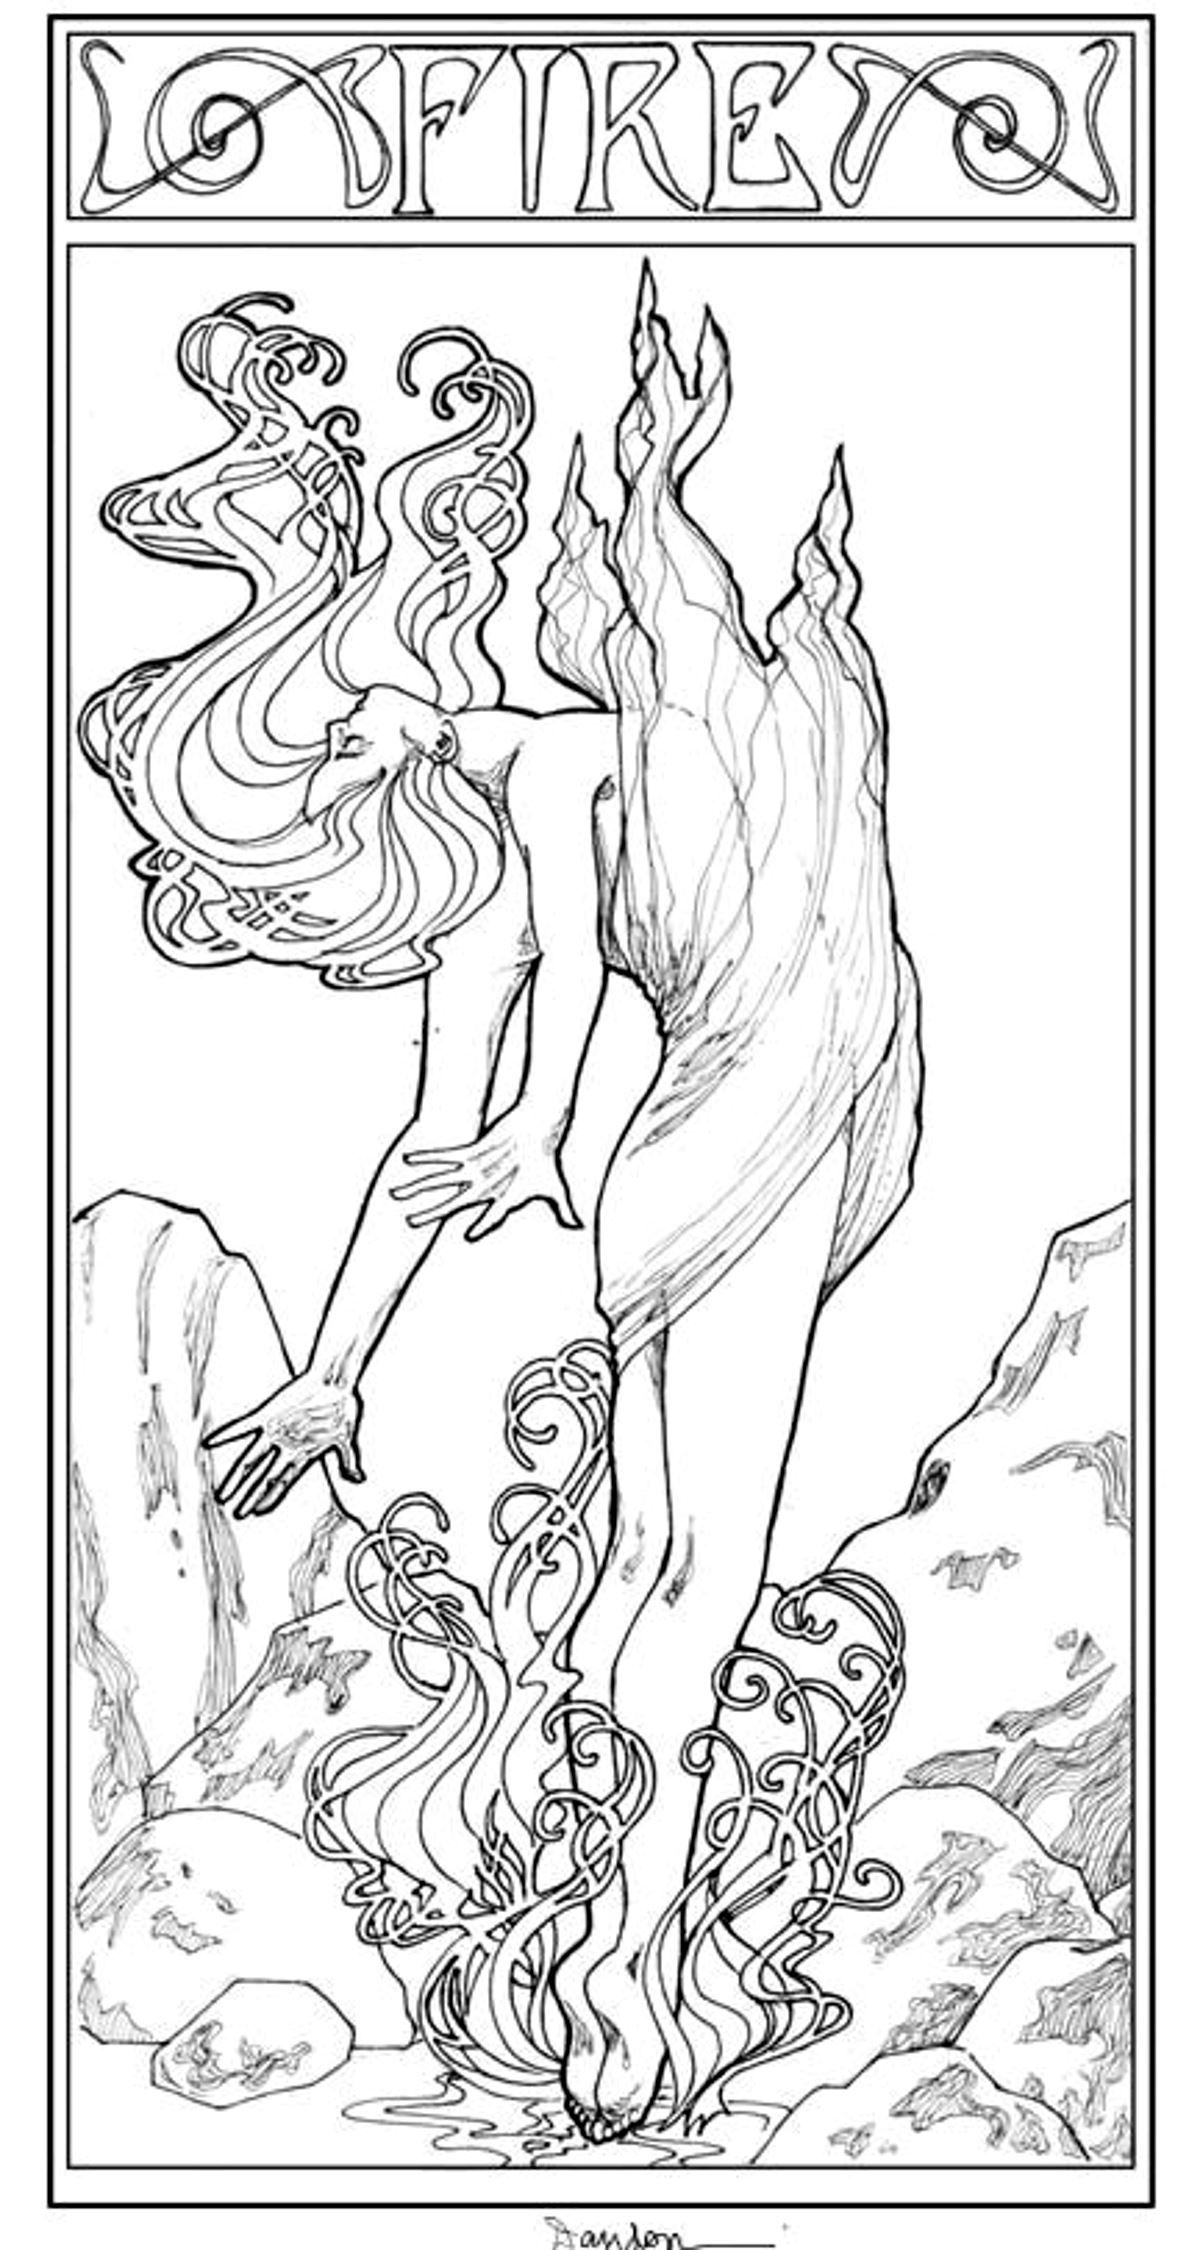 Coloring pages woman - Free Coloring Page Coloring Adult Art Nouveau Style Fire